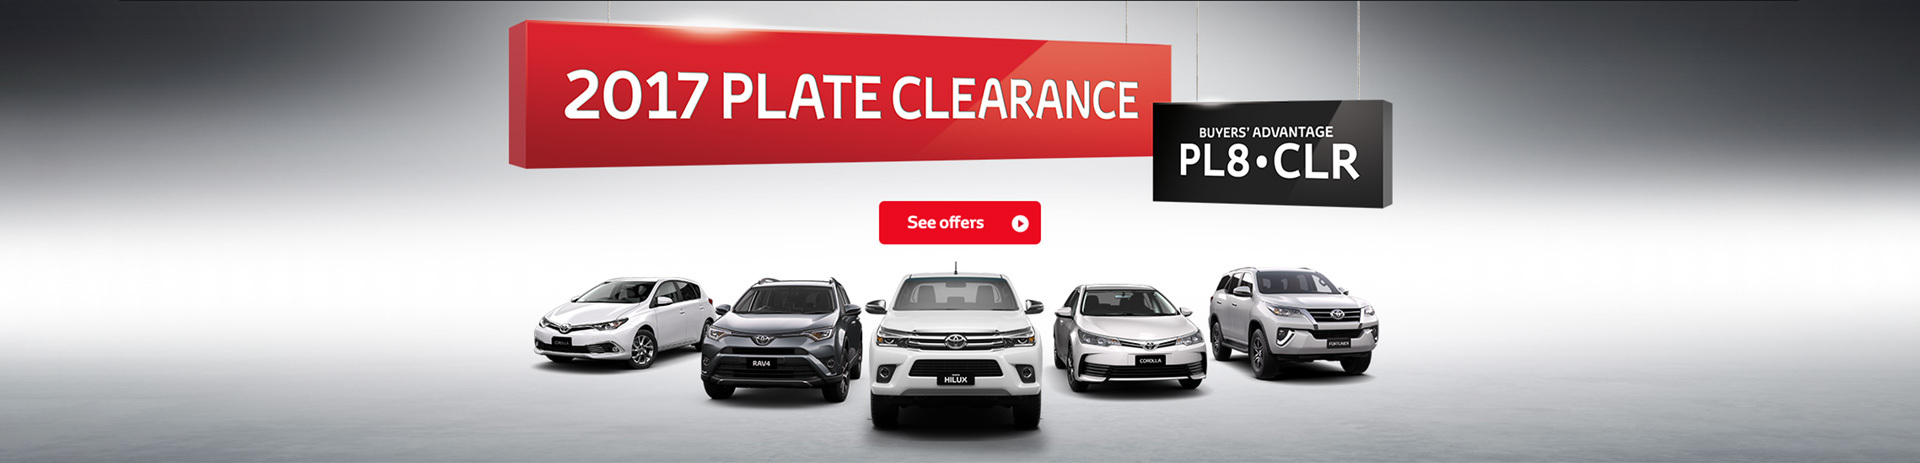 Toyota - National Offer - 2017 Plate Clearance